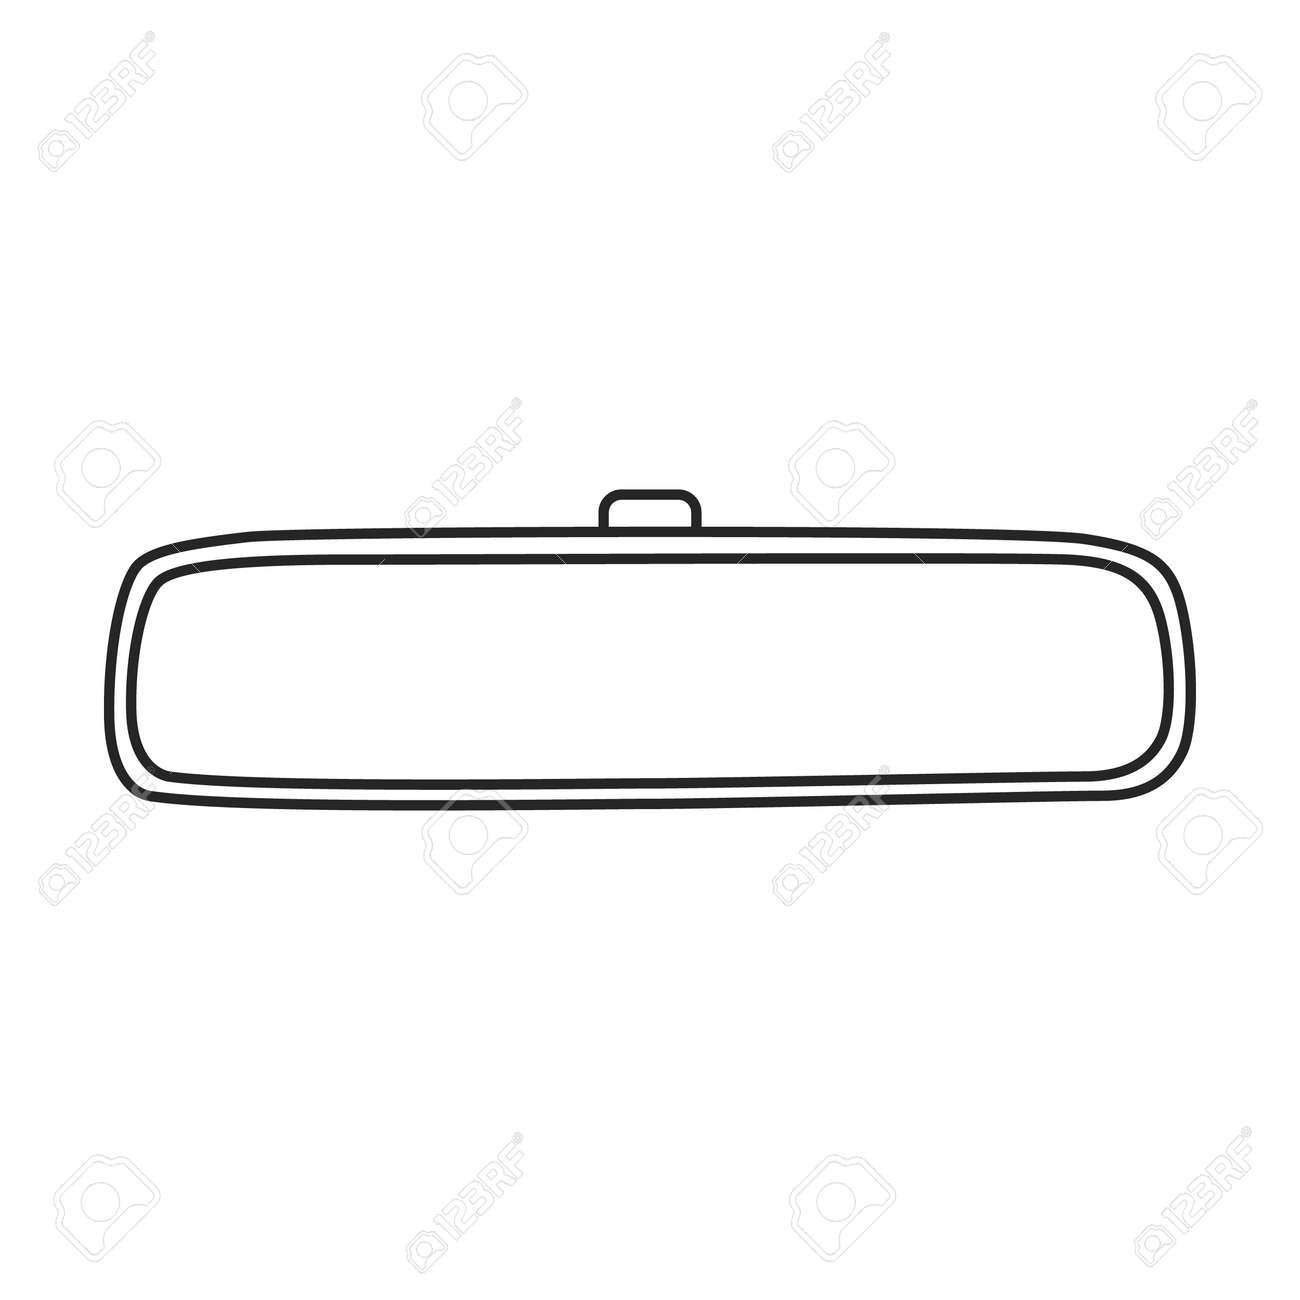 Mirror rear view car, vector outline icon. Vector illustration auto rearview on white background. Isolated outline illustration icon of mirror rear view. - 168841071